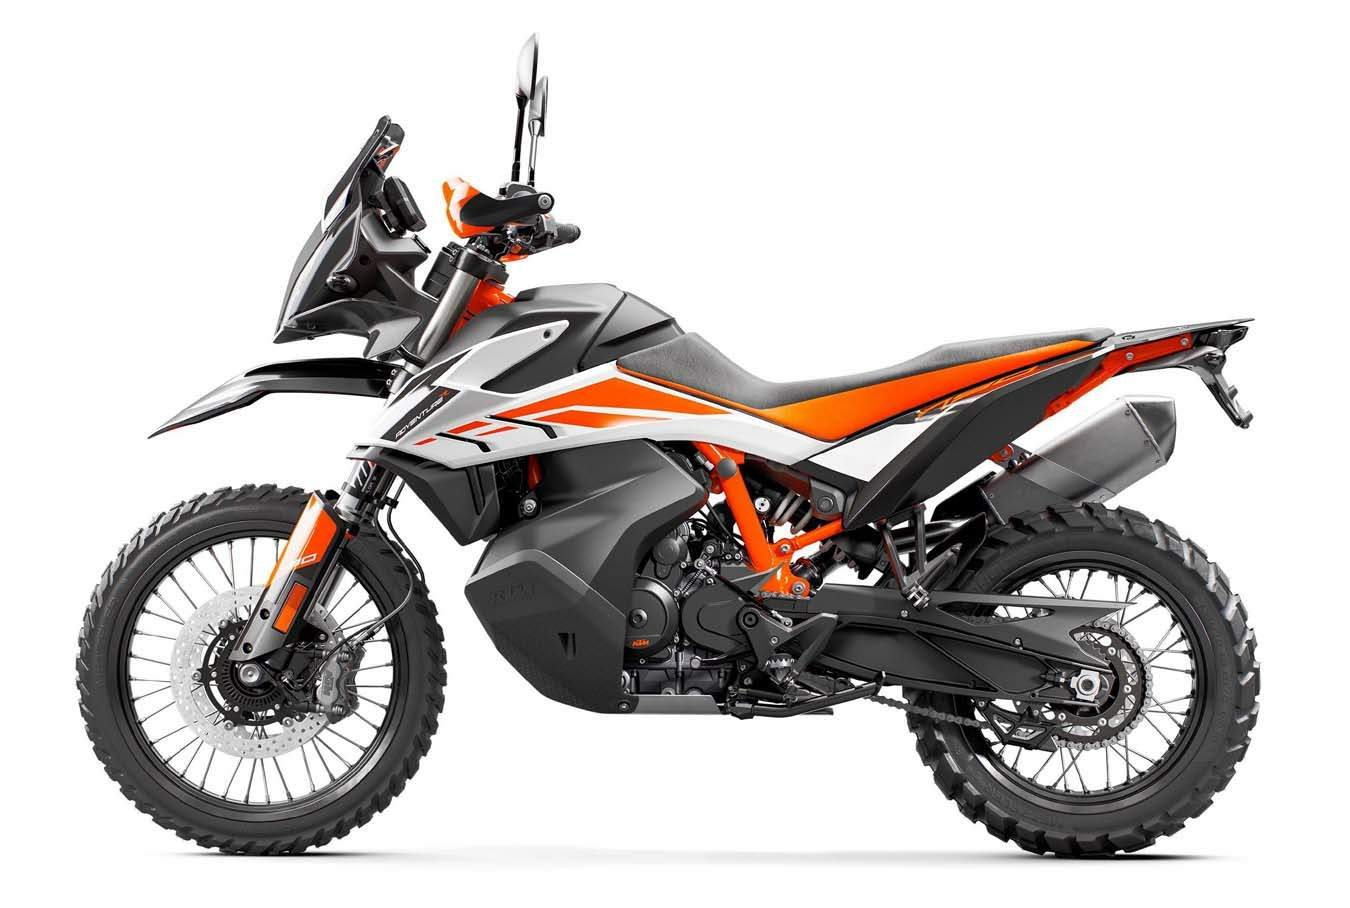 KTM 790 Adventure R technical specifications